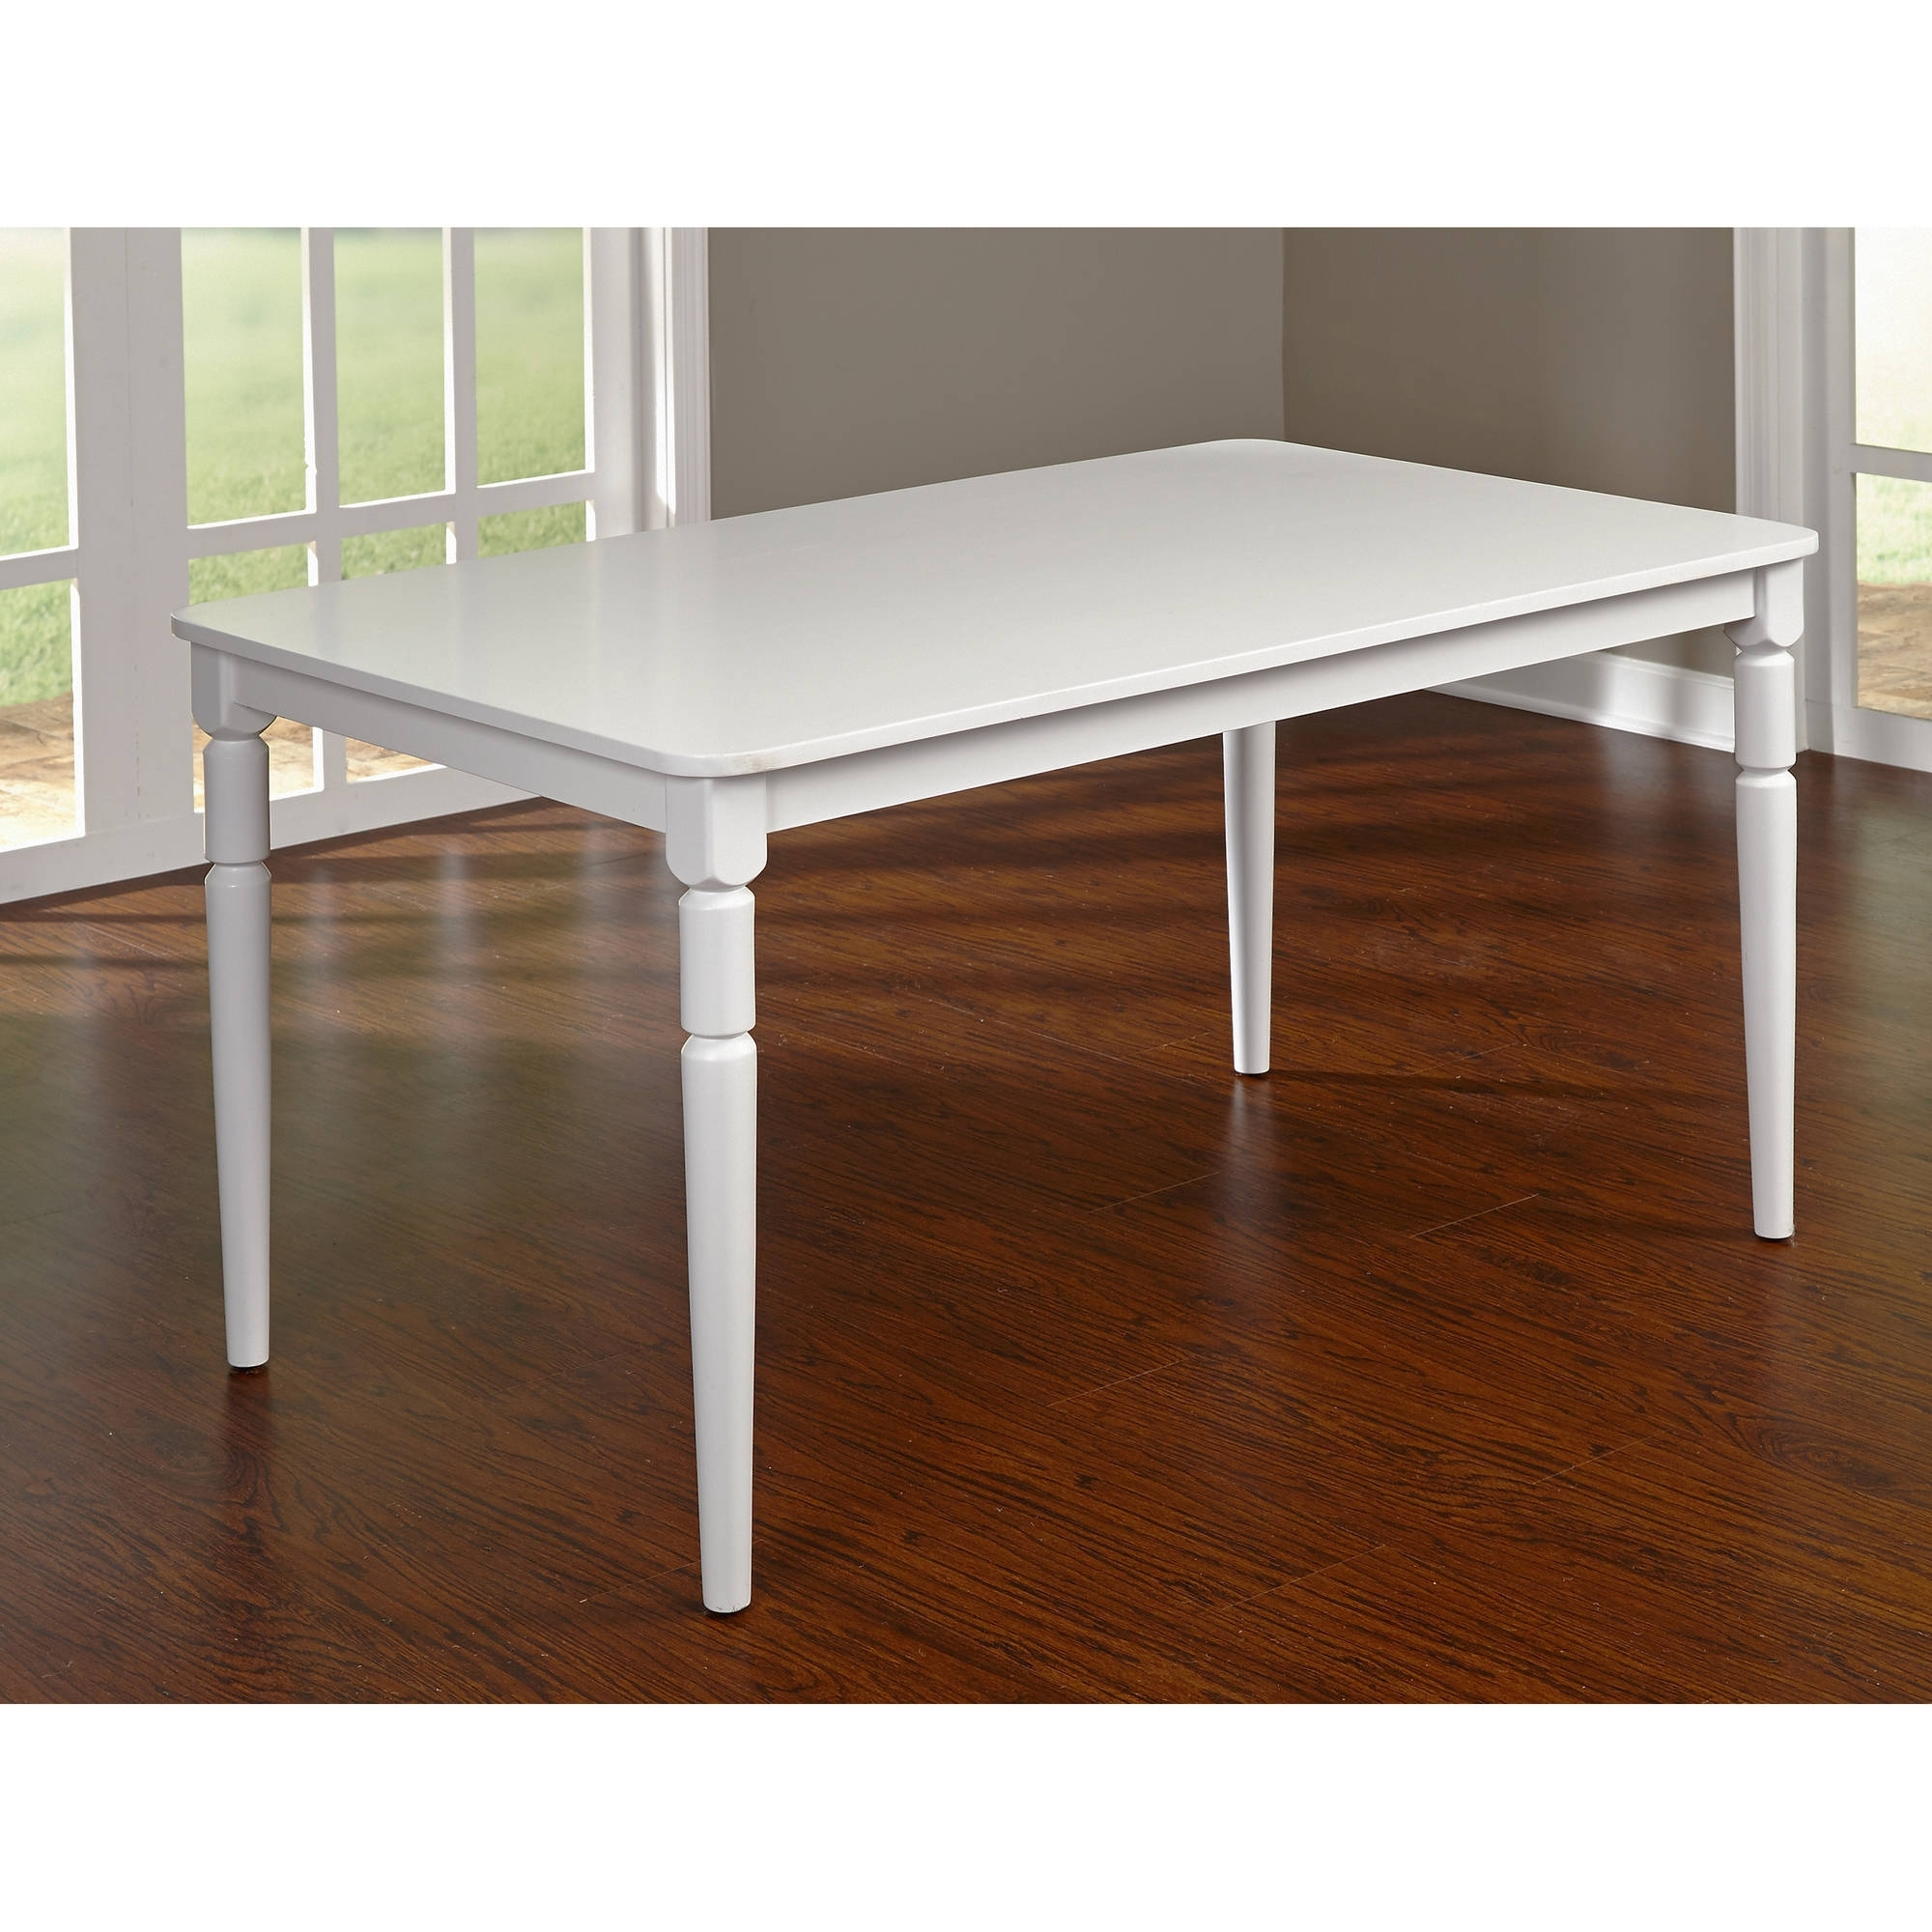 Albury Turned Legs Table, White – Walmart Pertaining To Current Dining Tables With White Legs (View 2 of 25)